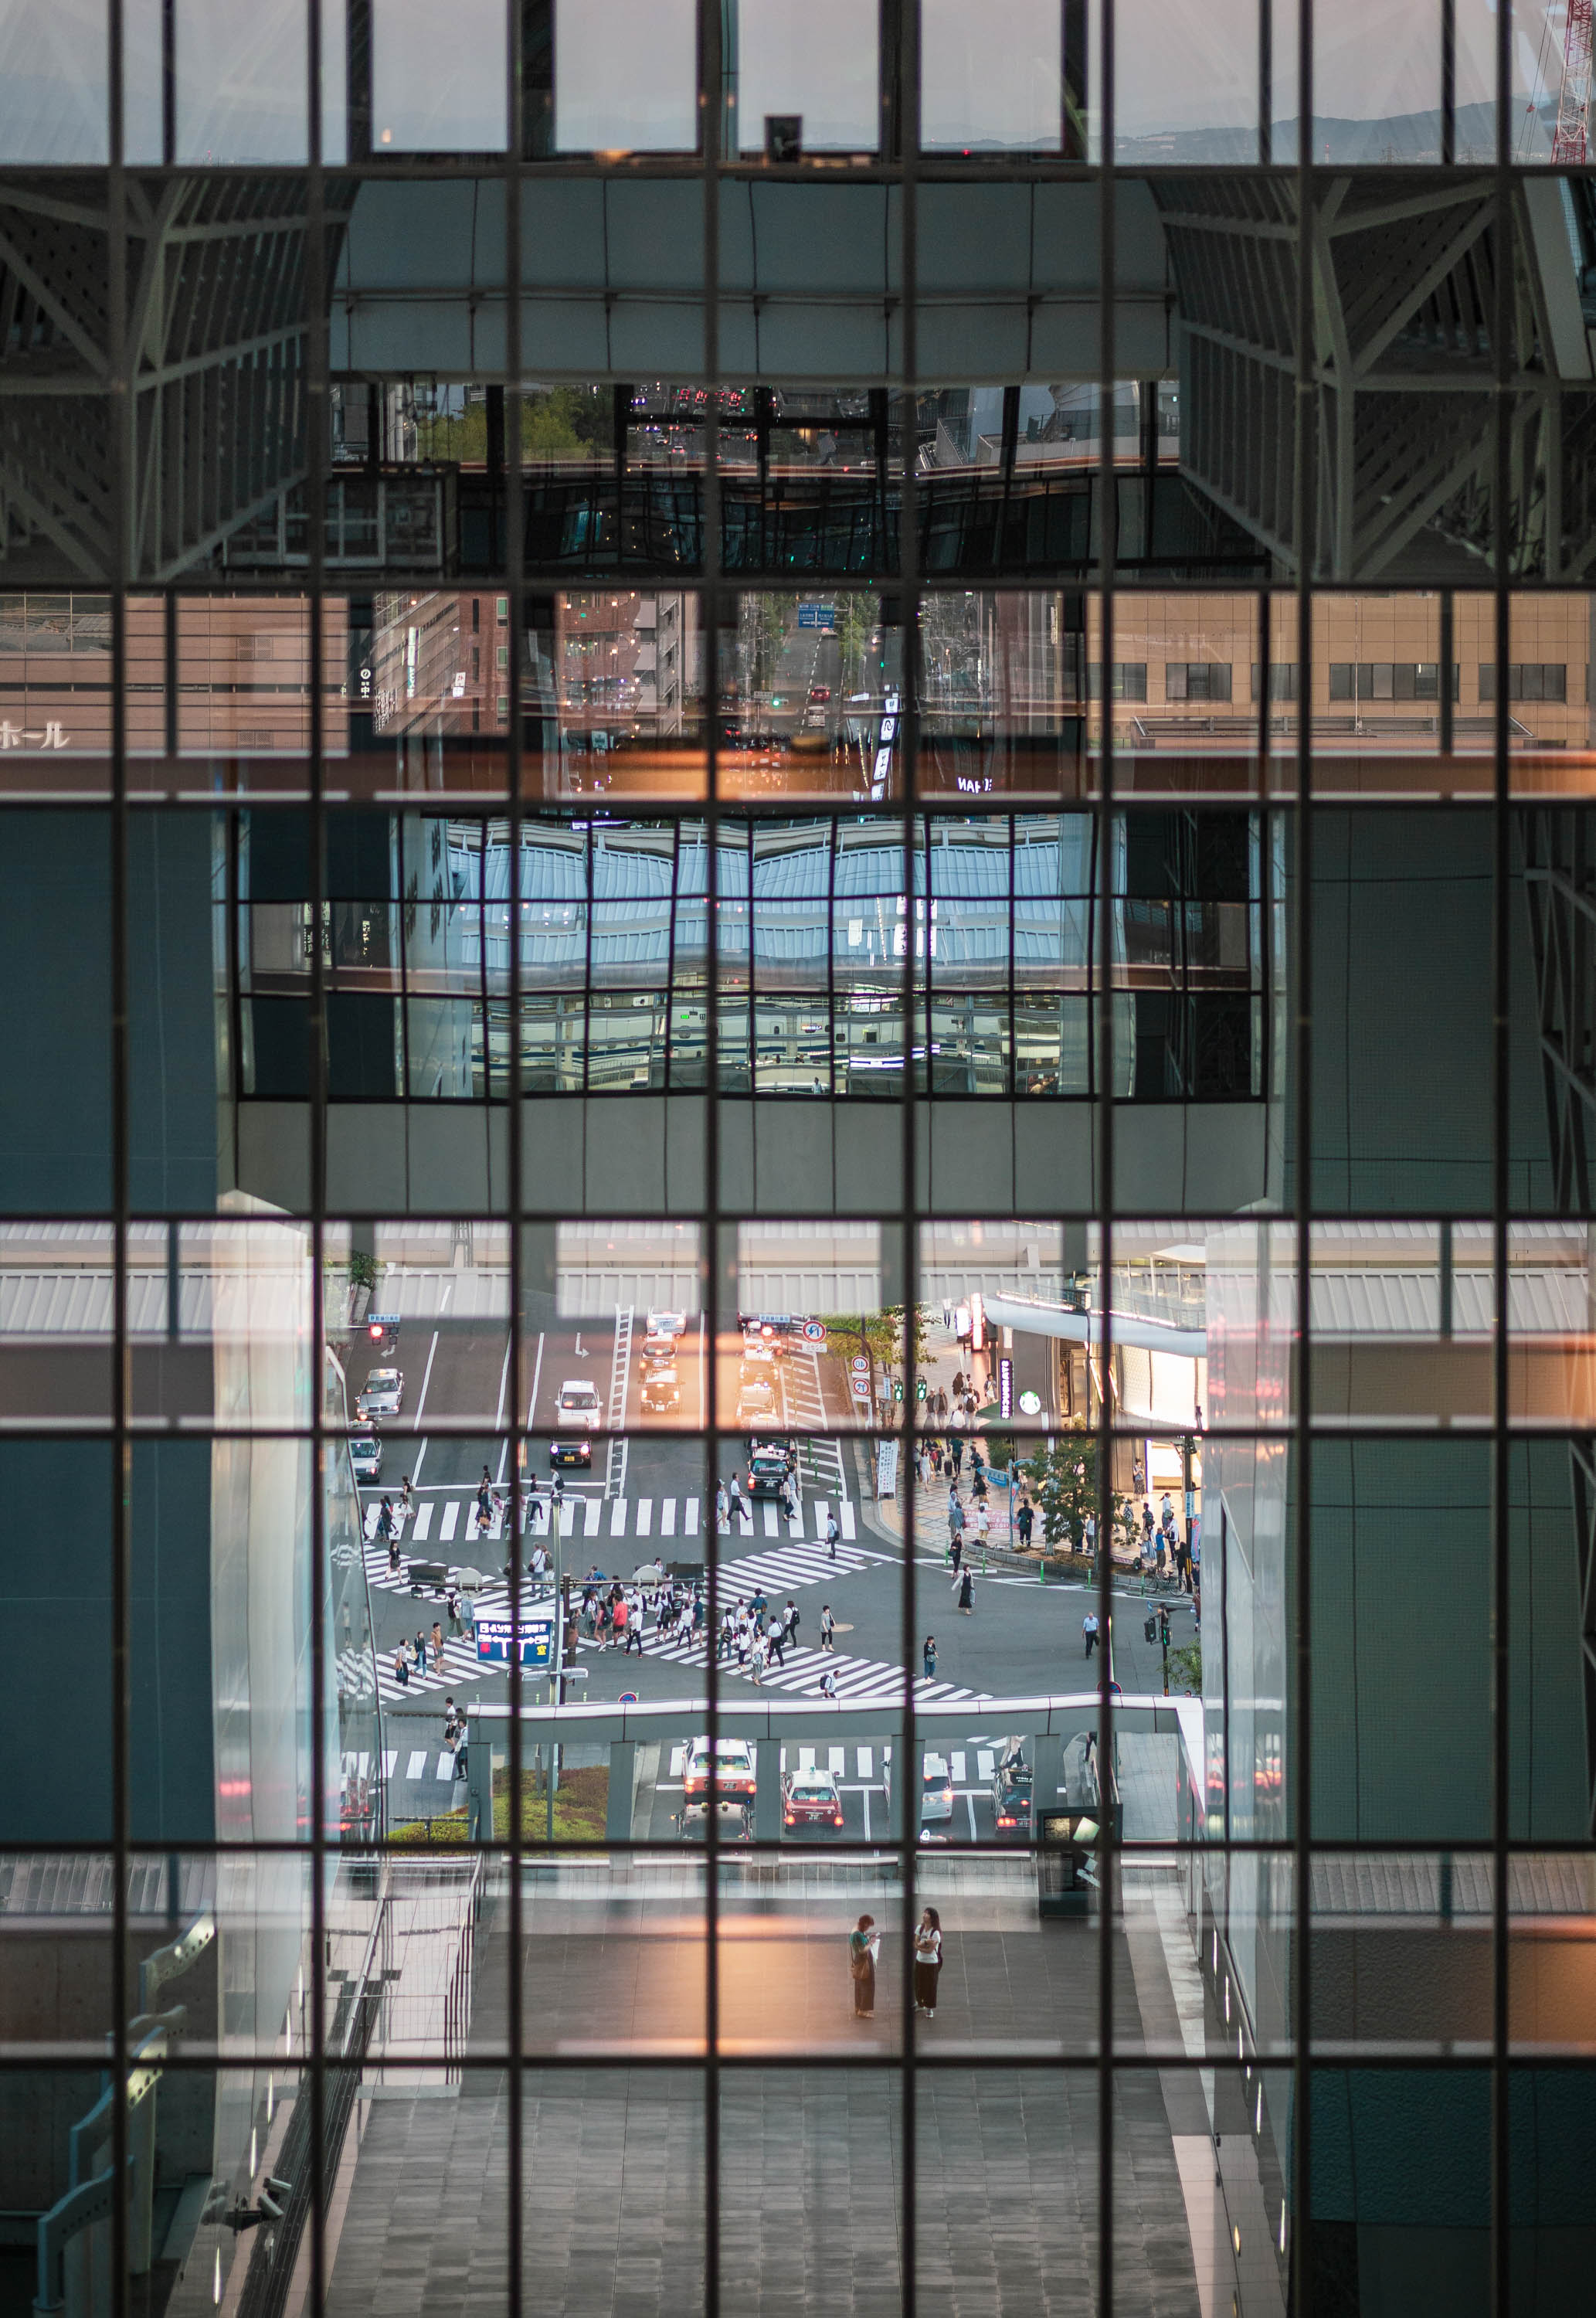 Kyoto-Station-Layers.jpg